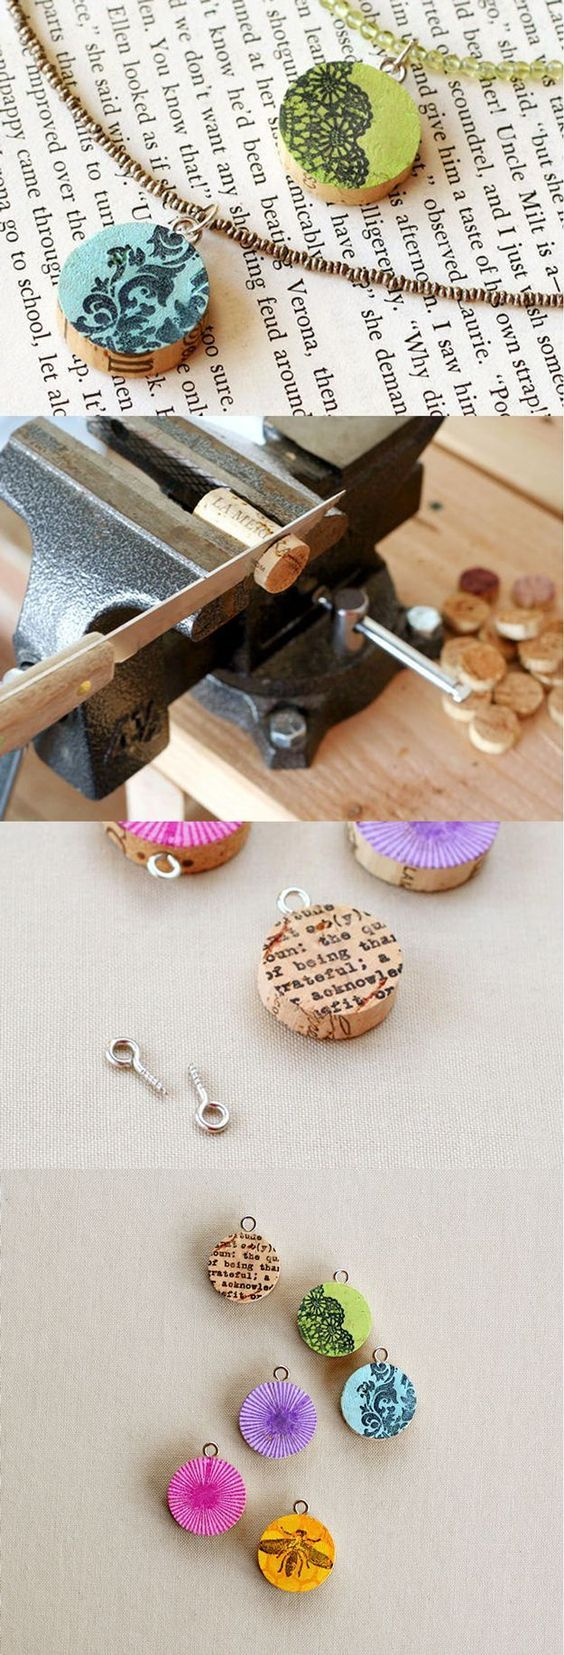 DIY Jewelry Ideas: Easy Wine Cork Pendants | DIY Wine Cork Jewelry for Teens by DIY Ready at http://diyready.com/more-wine-cork-crafts-ideas/: